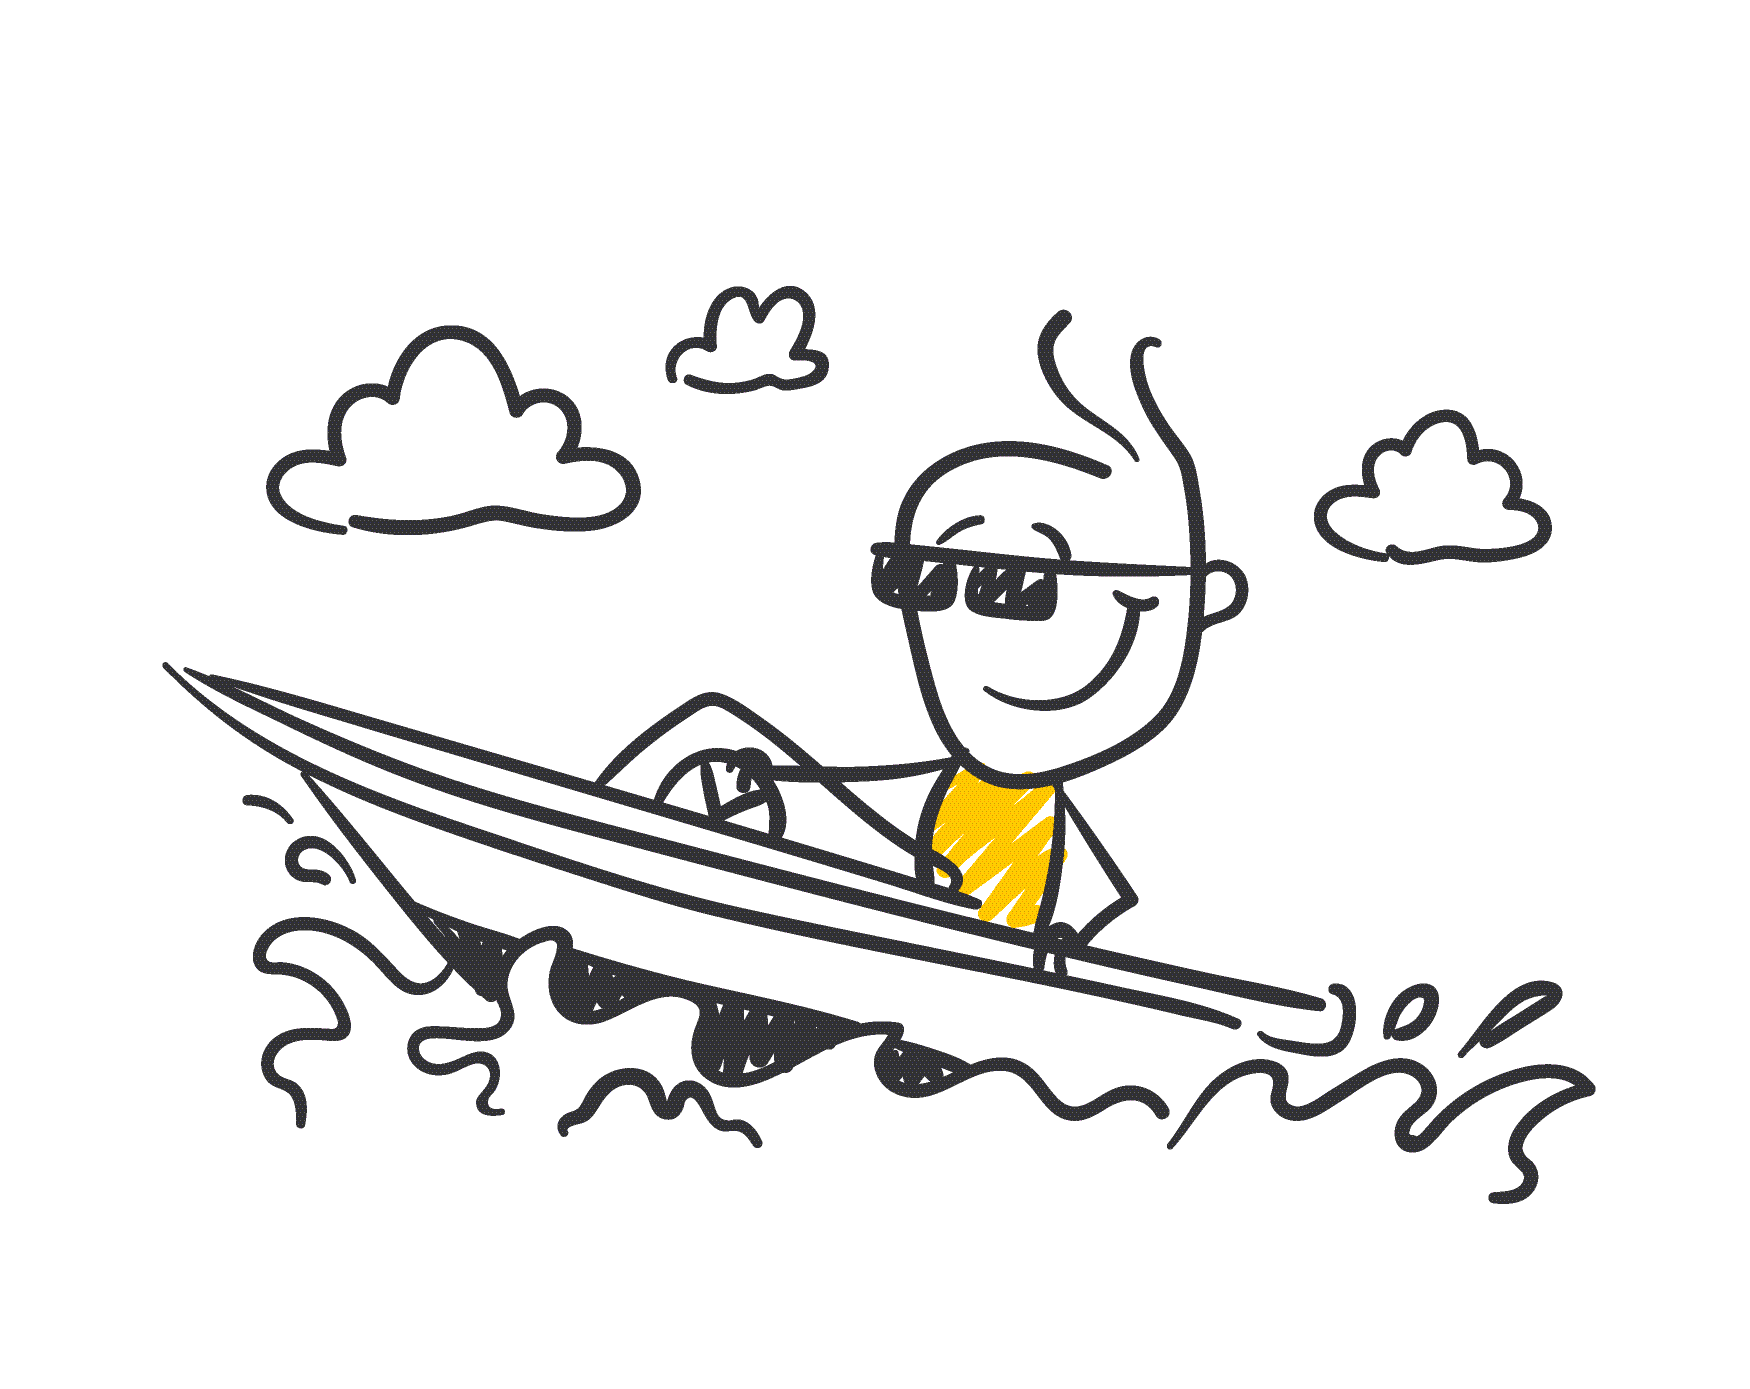 Ari drives a speedboat - Estate planning without kids